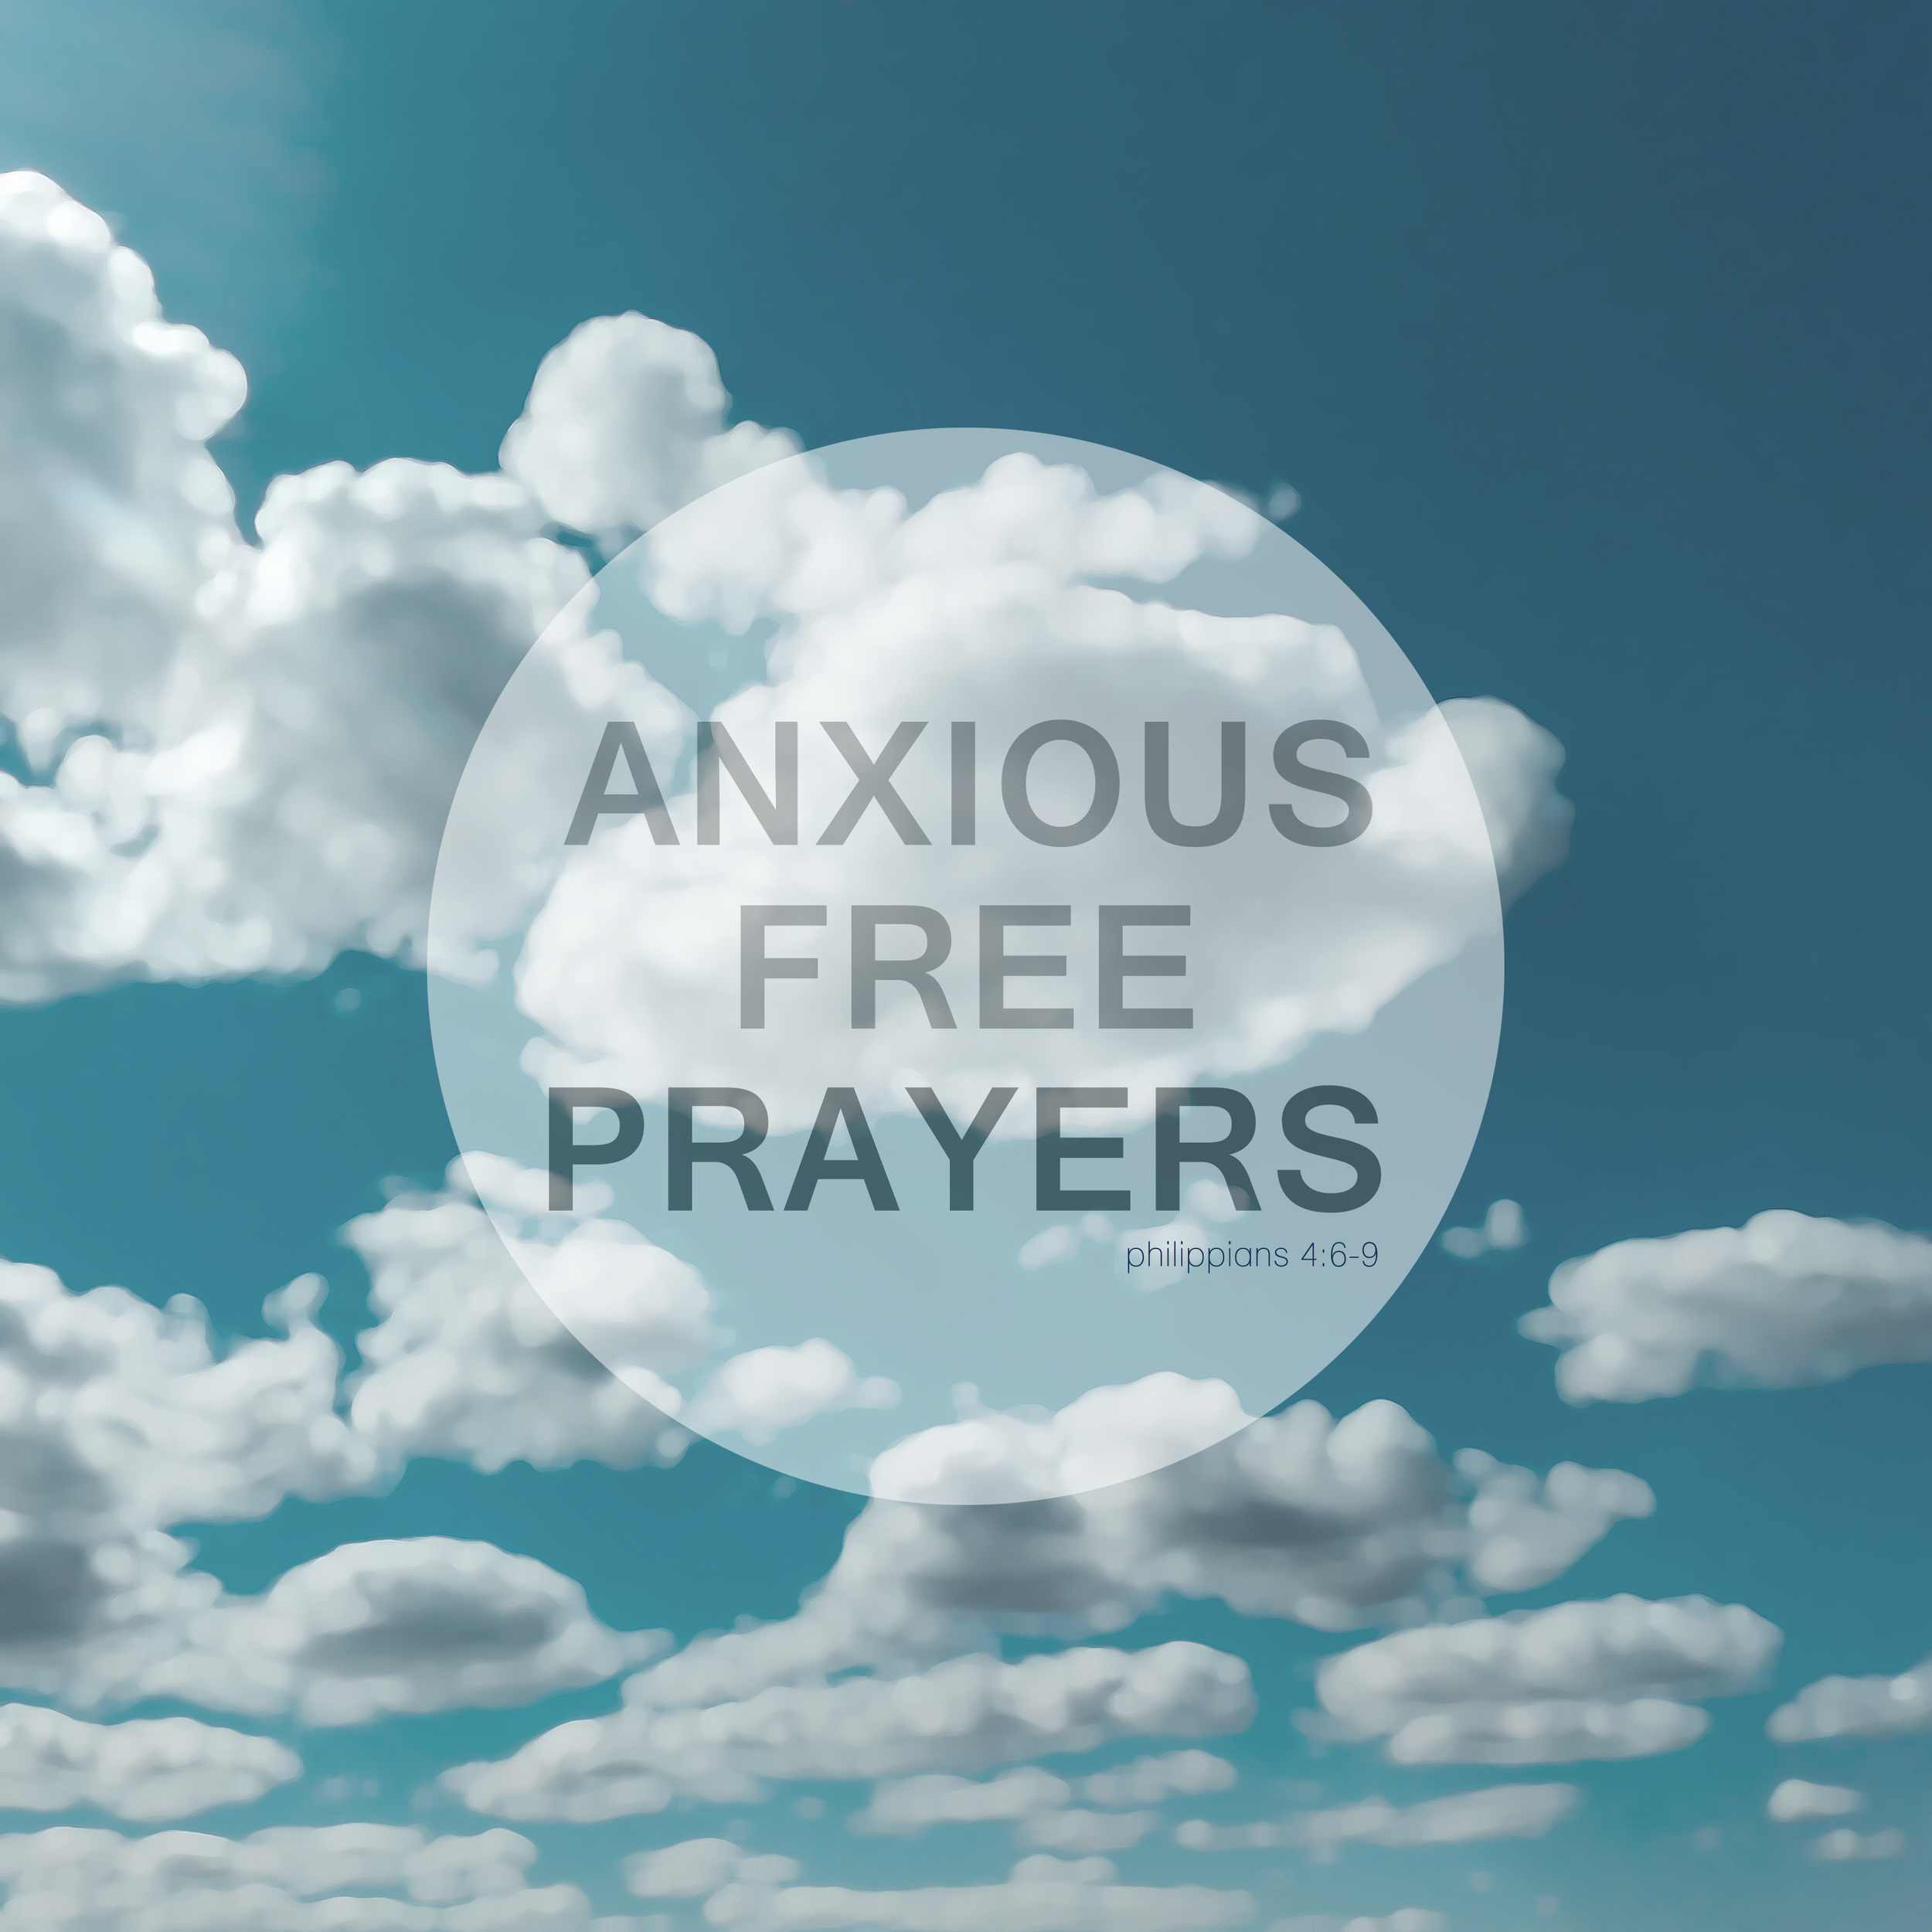 twai_Anxious Free Prayers